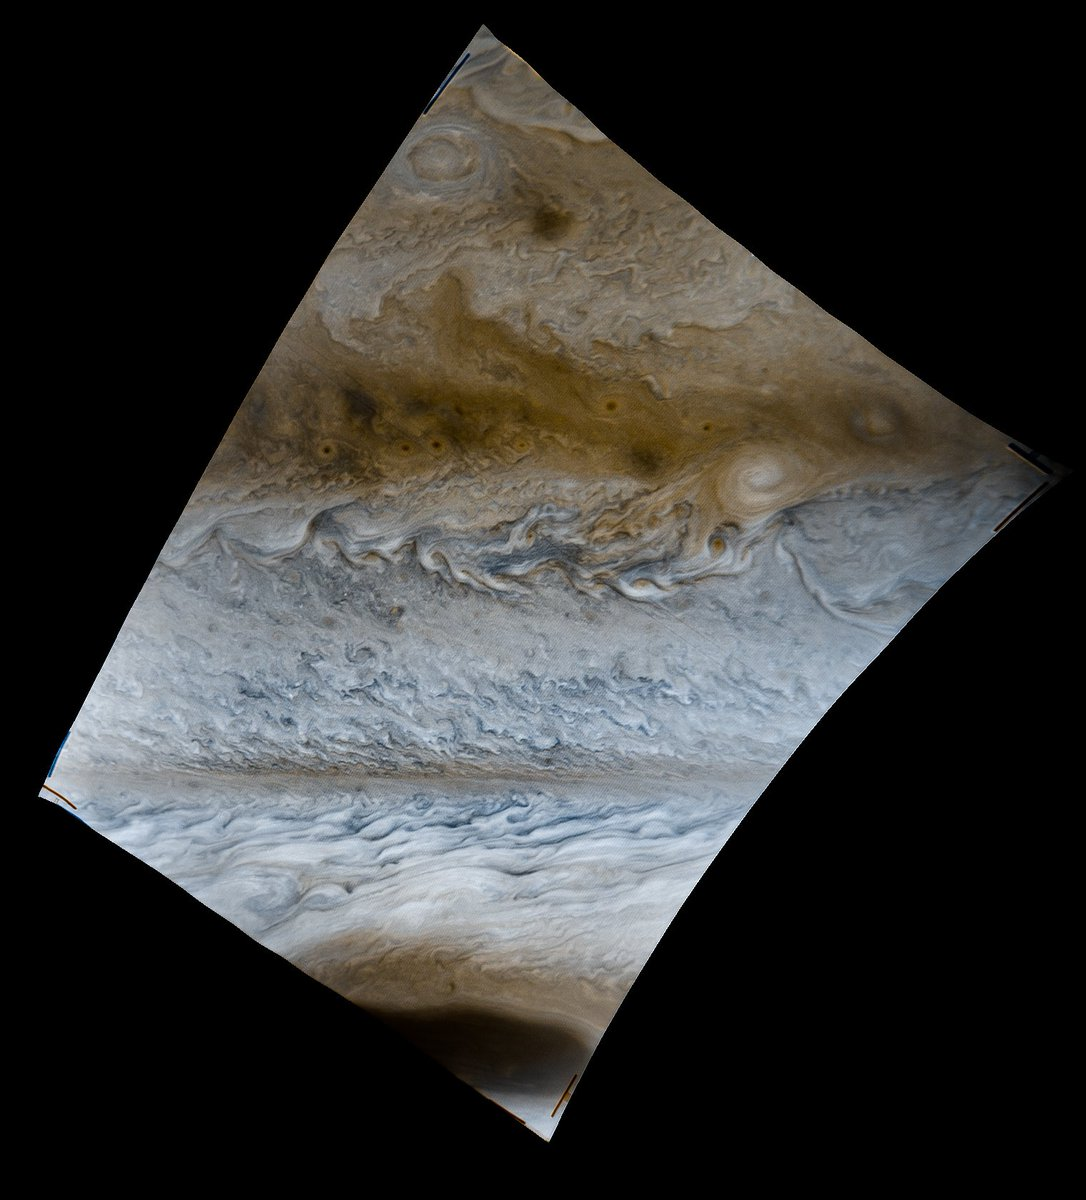 This is Jupiter at 25.6 km/pixel. @NASAVoyager data from March, 1979 - https://t.co/nM2o6shLmS https://t.co/k36QBOkx3n